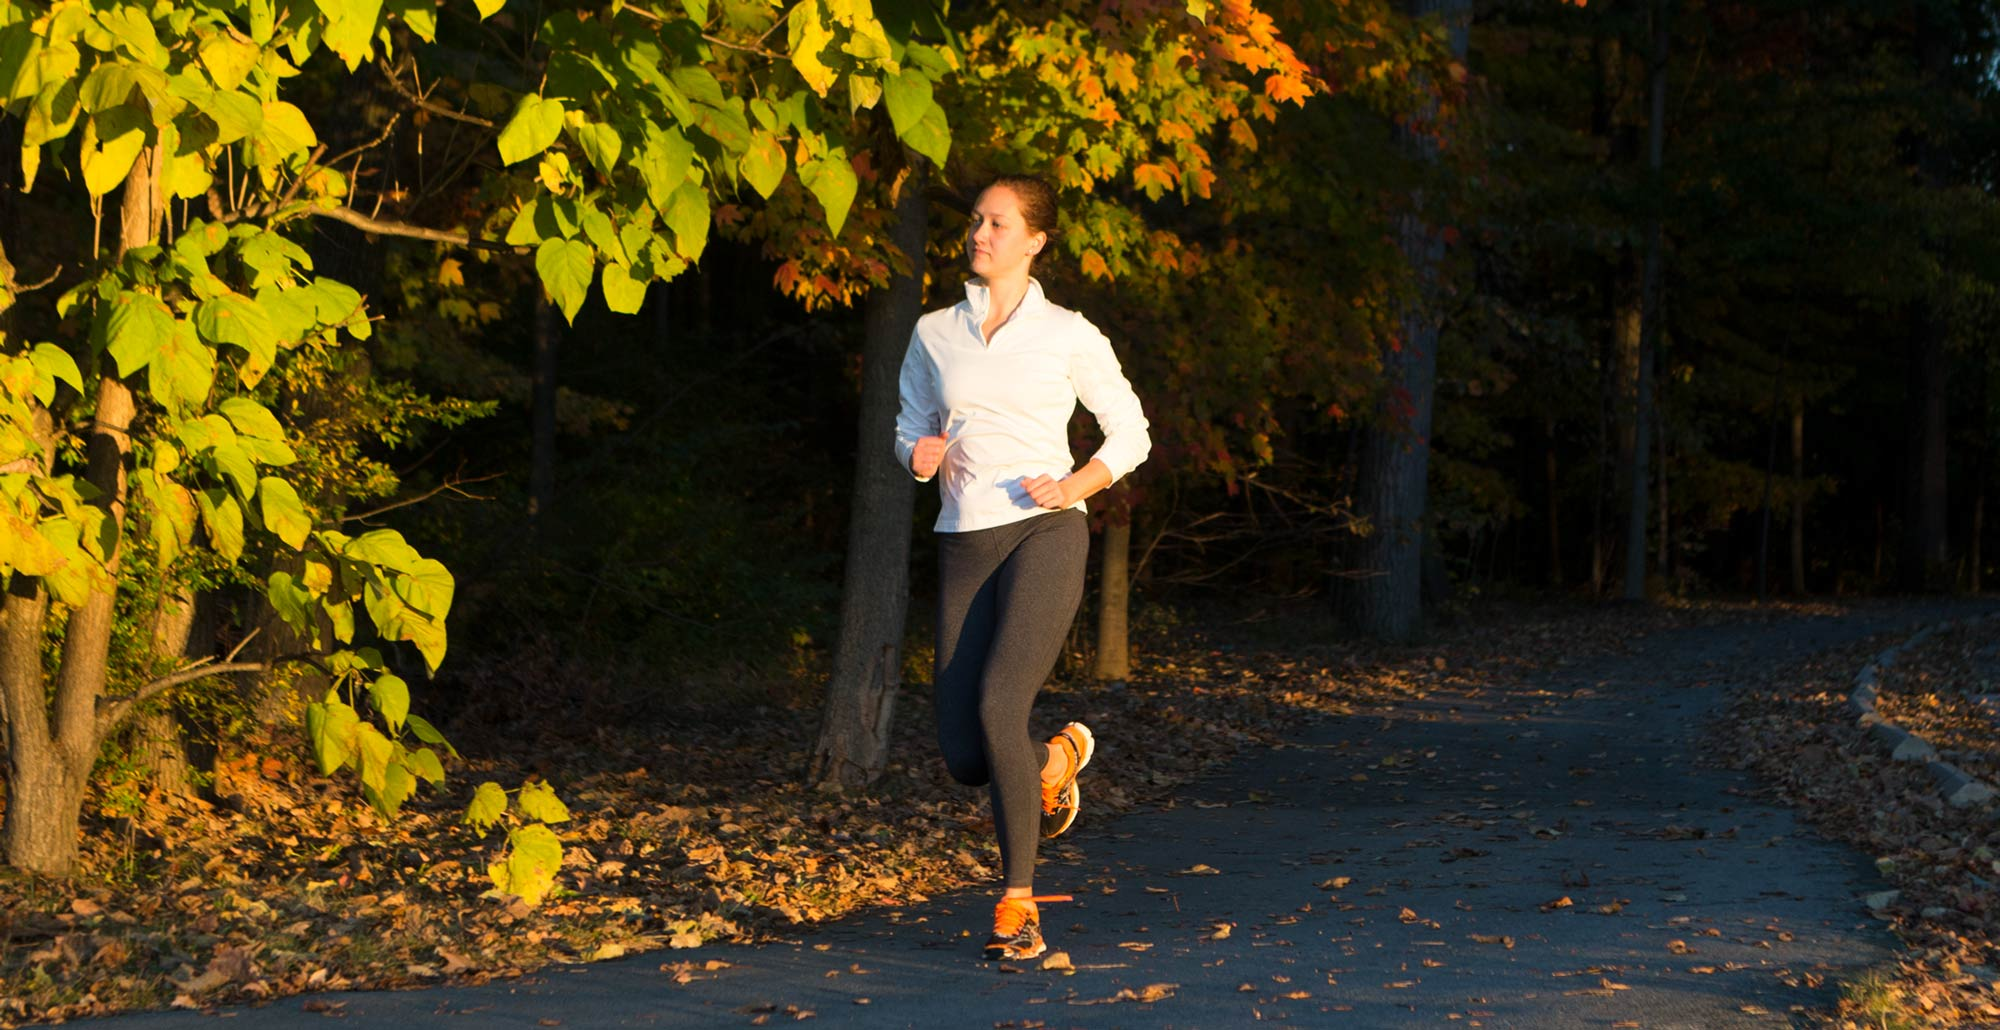 A jogger uses the Green Monster under the changing fall leaves.